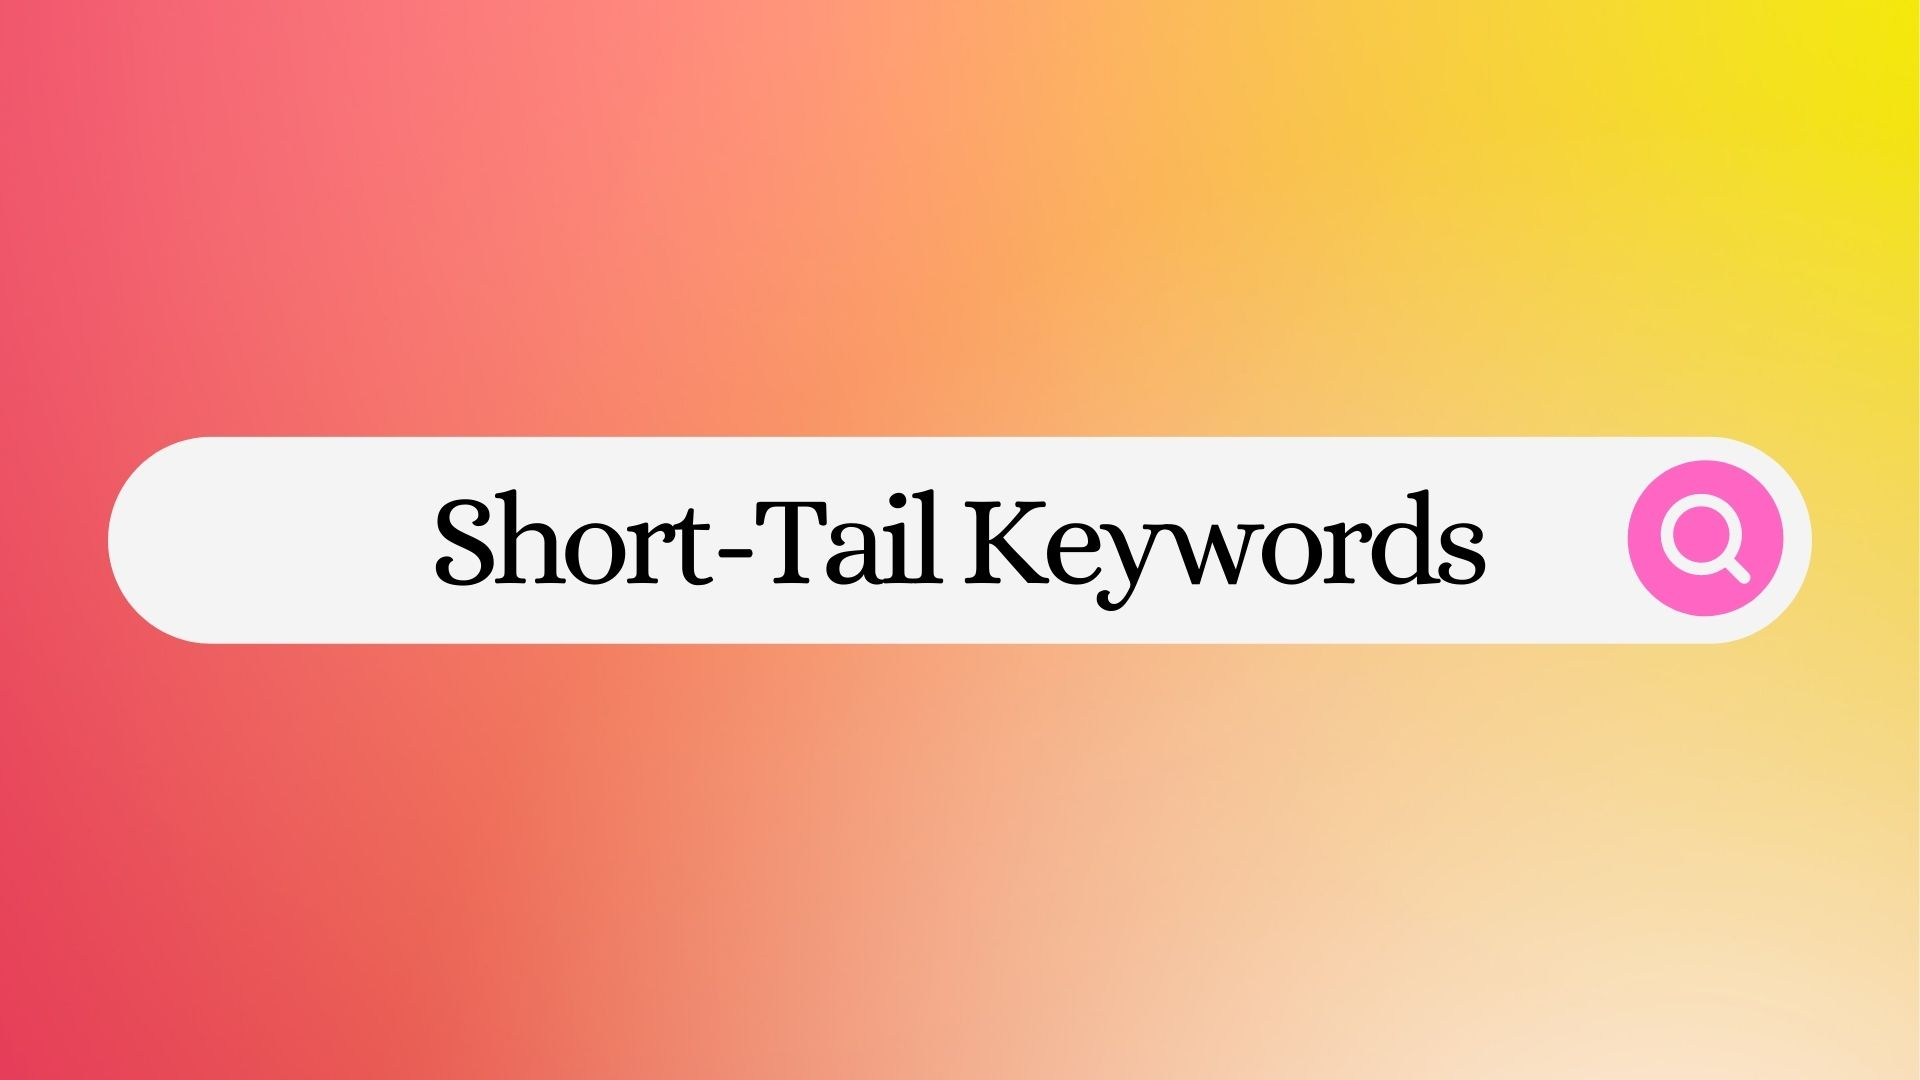 What Are Short-Tail Keywords?